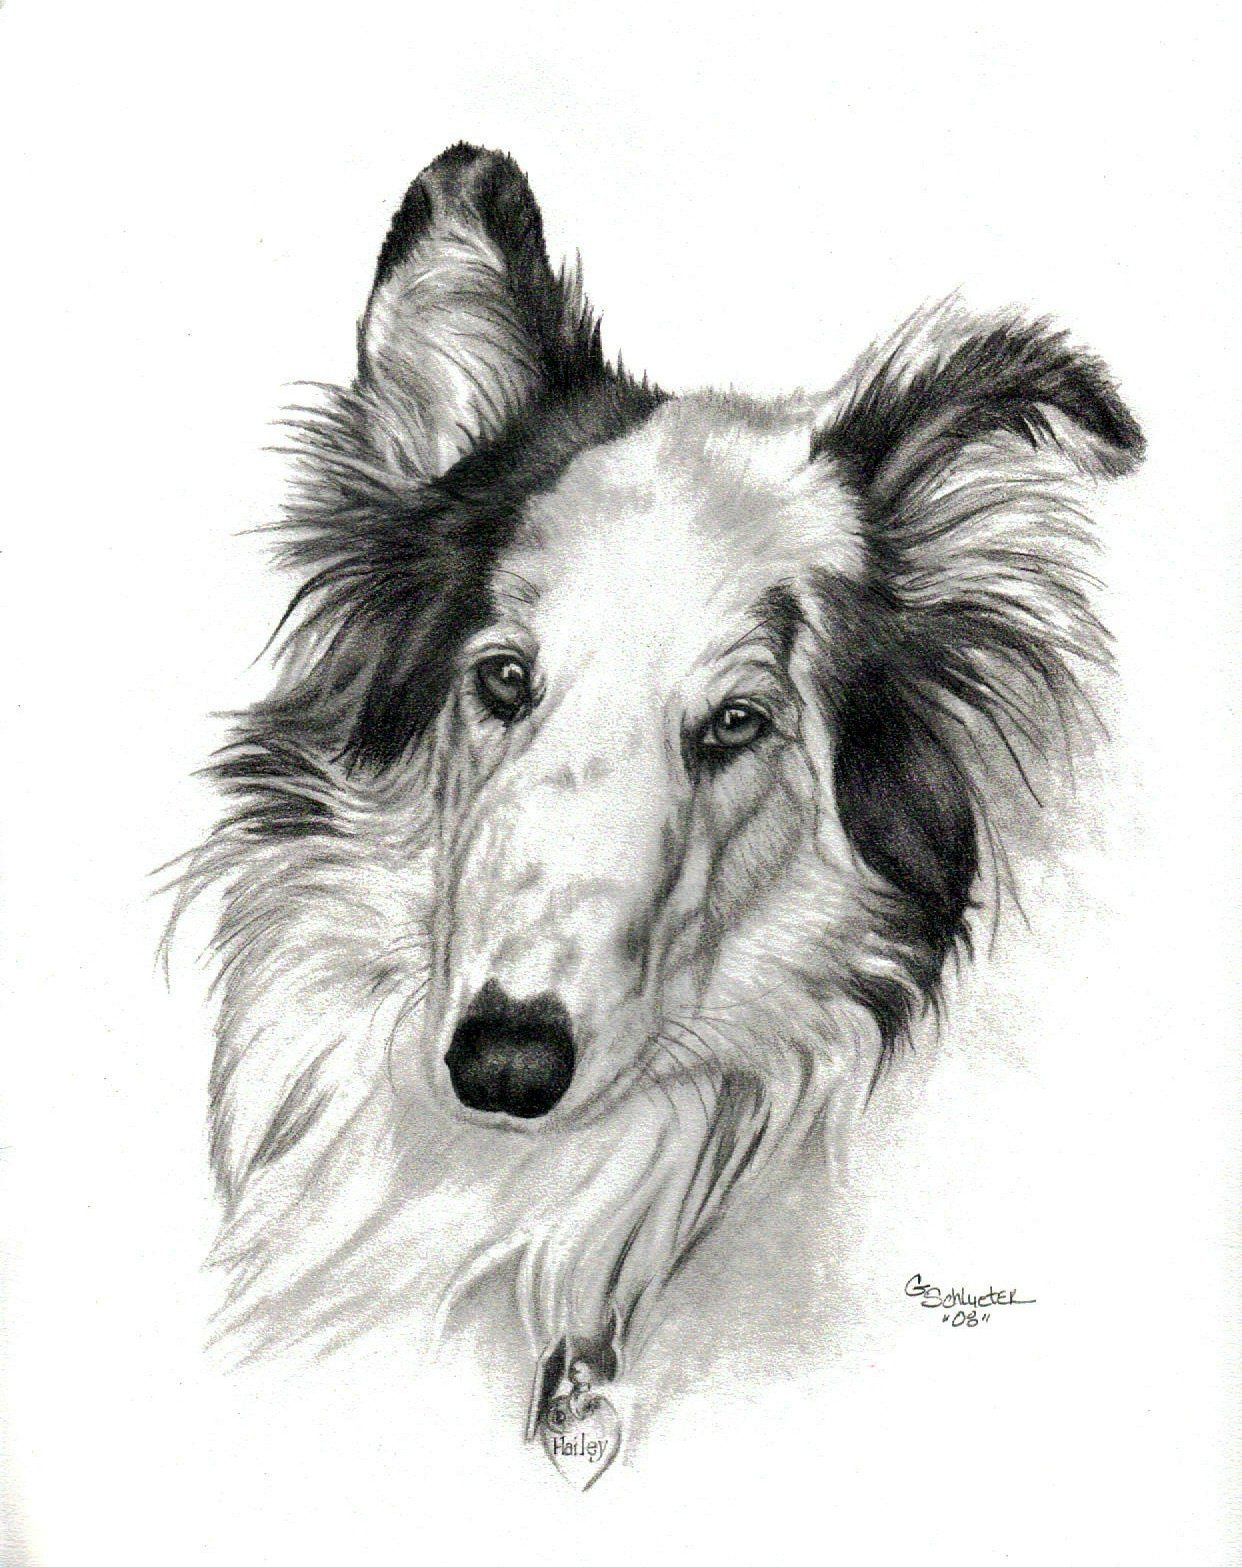 Hailey The Rough Collie Sketch Hand Drawn By Genevieve Schlueter